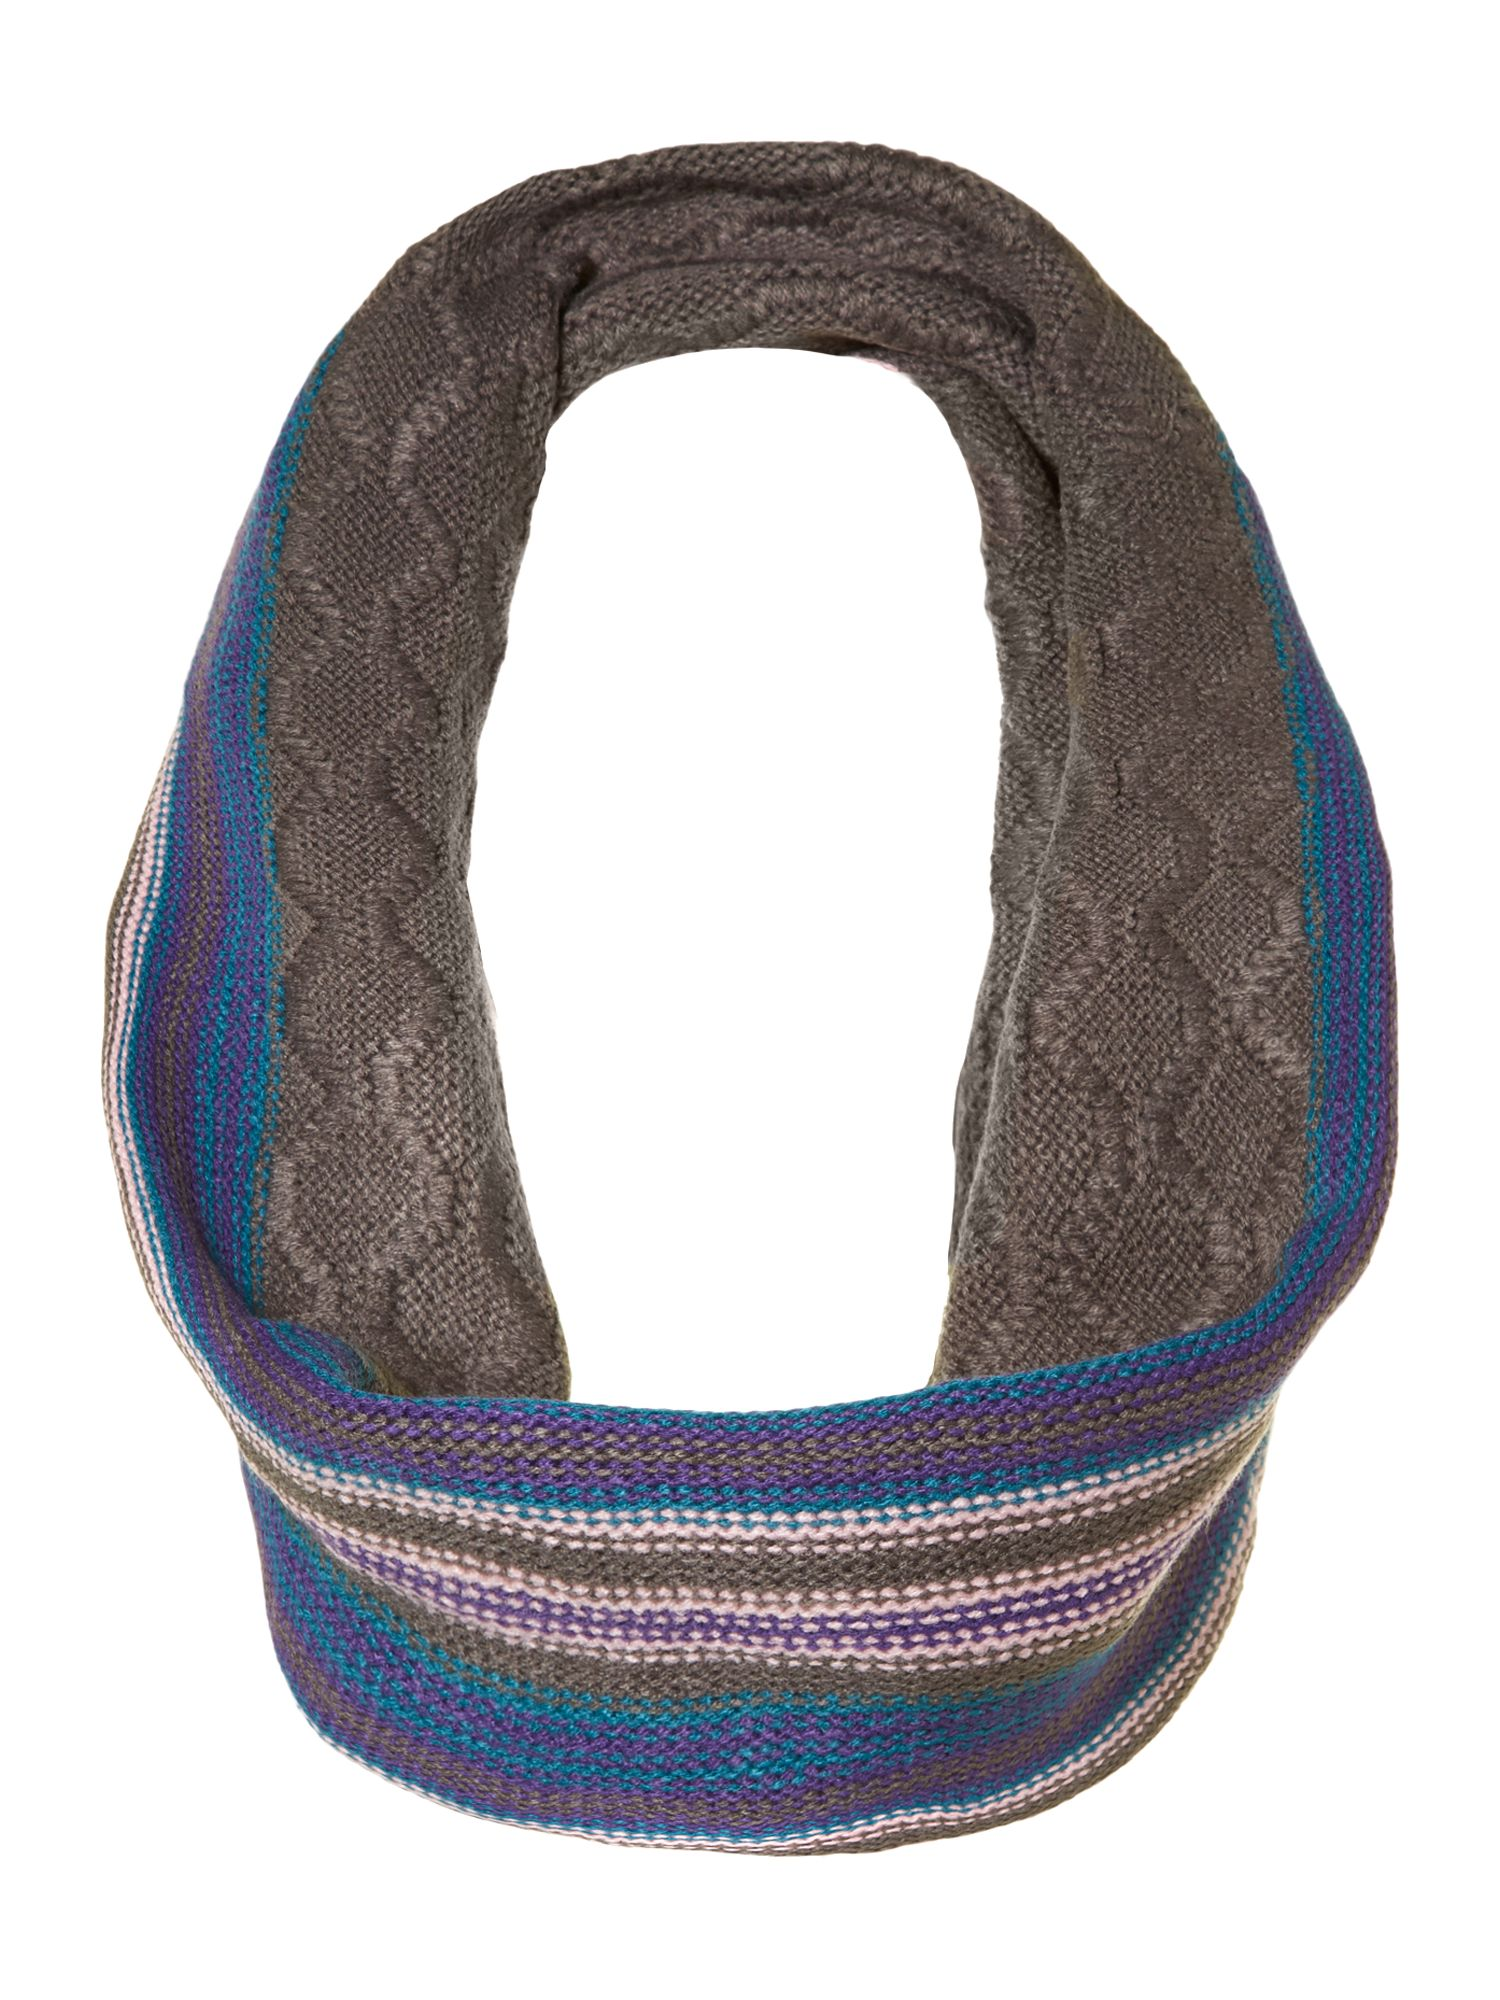 Stripey knitted snood